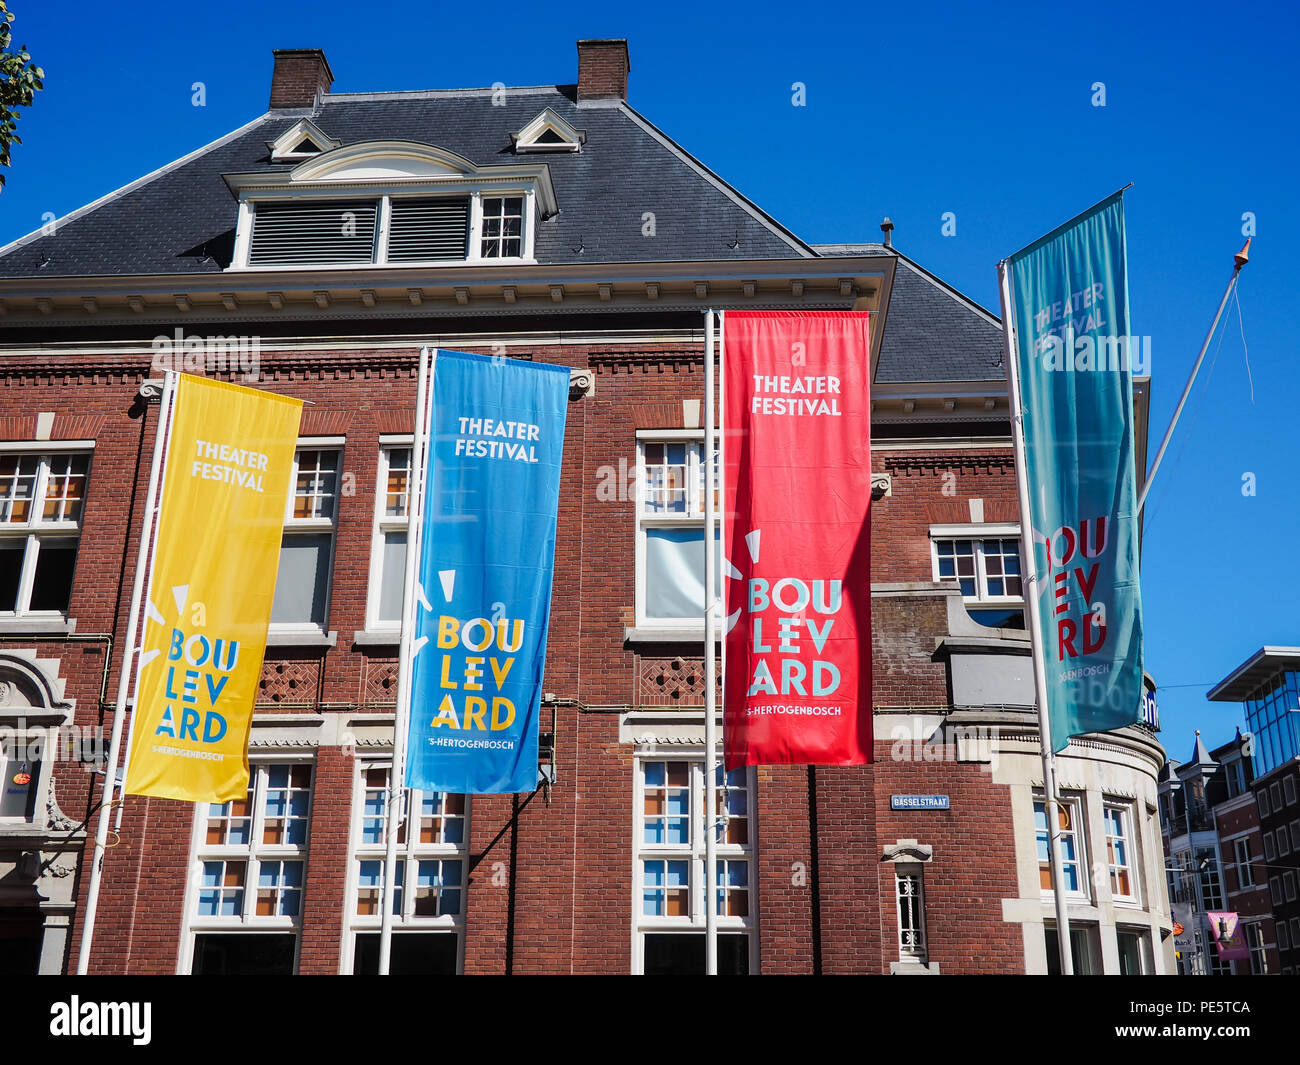 August 2018 - 's-Hertogenbosch, Netherlands: Large banners advertising for the yearly street theater festival Boulevard - Stock Image